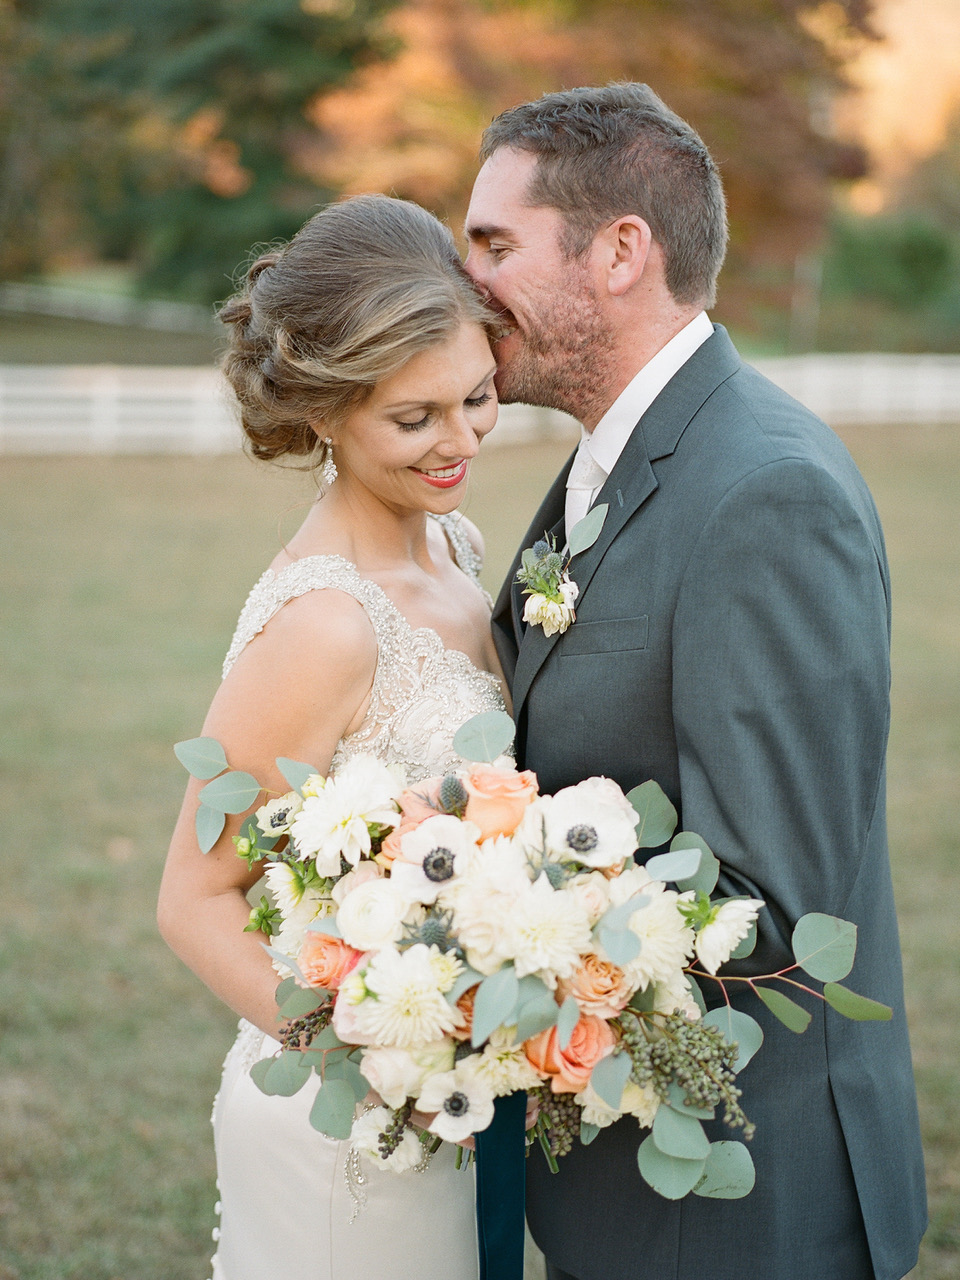 Peaches and Cream Bridal Bouquet featuring white anemones, peach roses, white ranunculus, white dahlias, privet berry and silver dollar eucalyptus.   Flowers by Flower Buds. Photo by Davy Whitener Photography. Venue The Ruins at Kellum Valley Farm